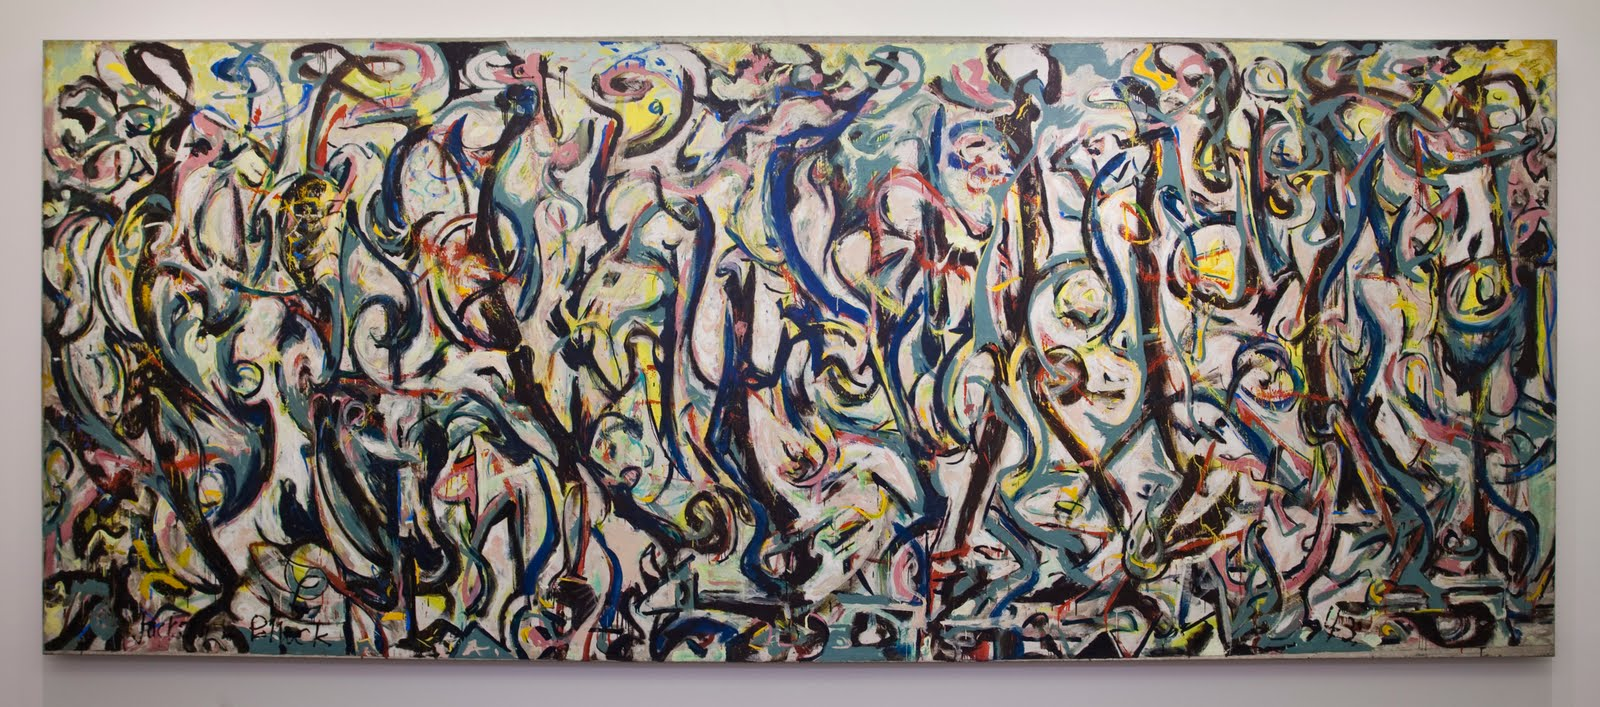 the common curator the value of jackson pollock s mural the value of jackson pollock s mural